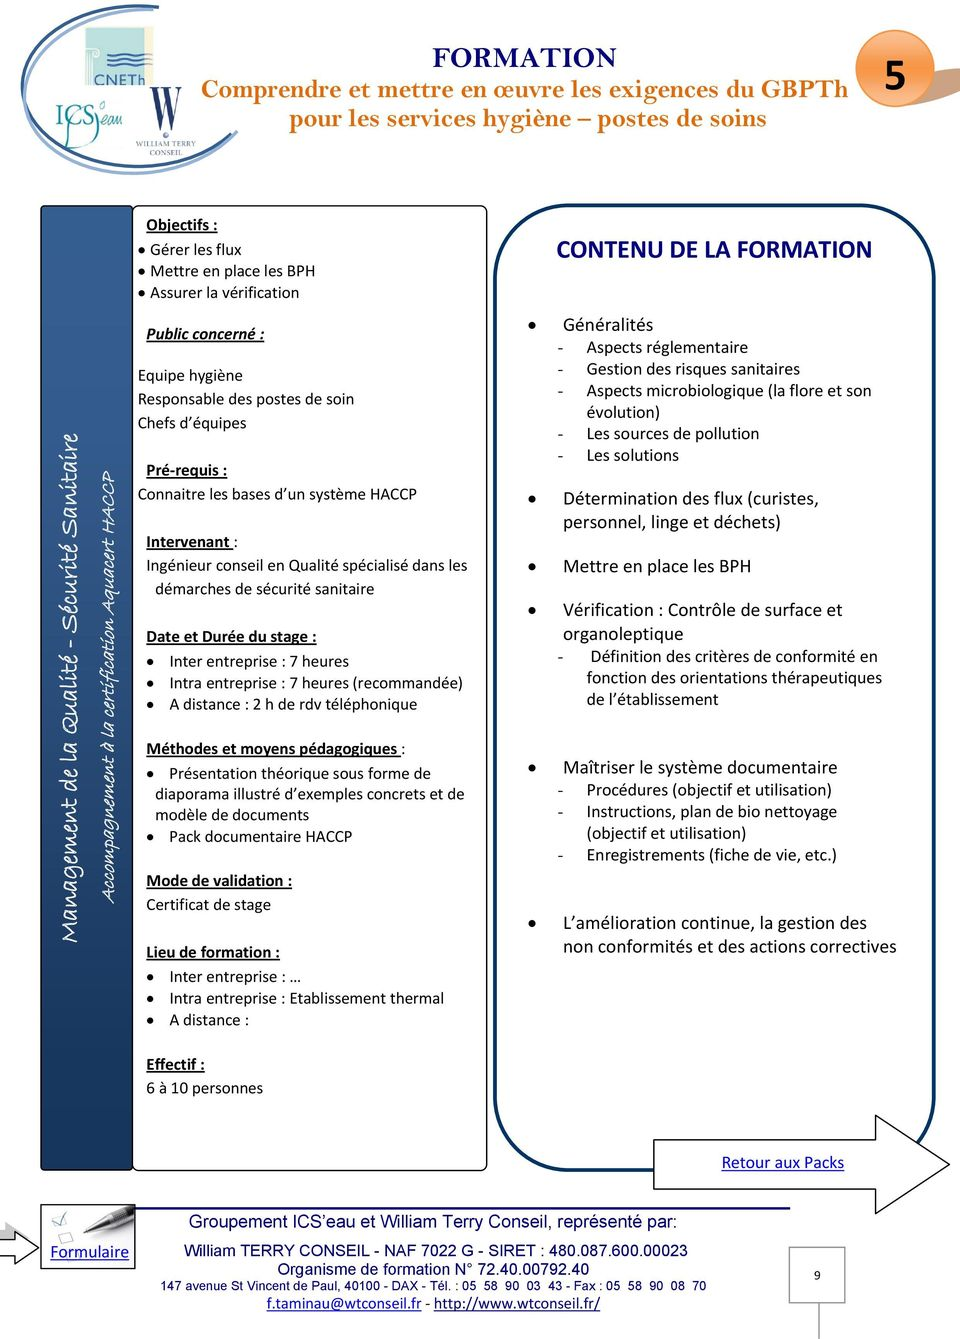 (recommandée) A distance : 2 h de rdv téléphonique Présentation théorique sous forme de diaporama illustré d exemples concrets et de modèle de documents Pack documentaire HACCP Certificat de stage